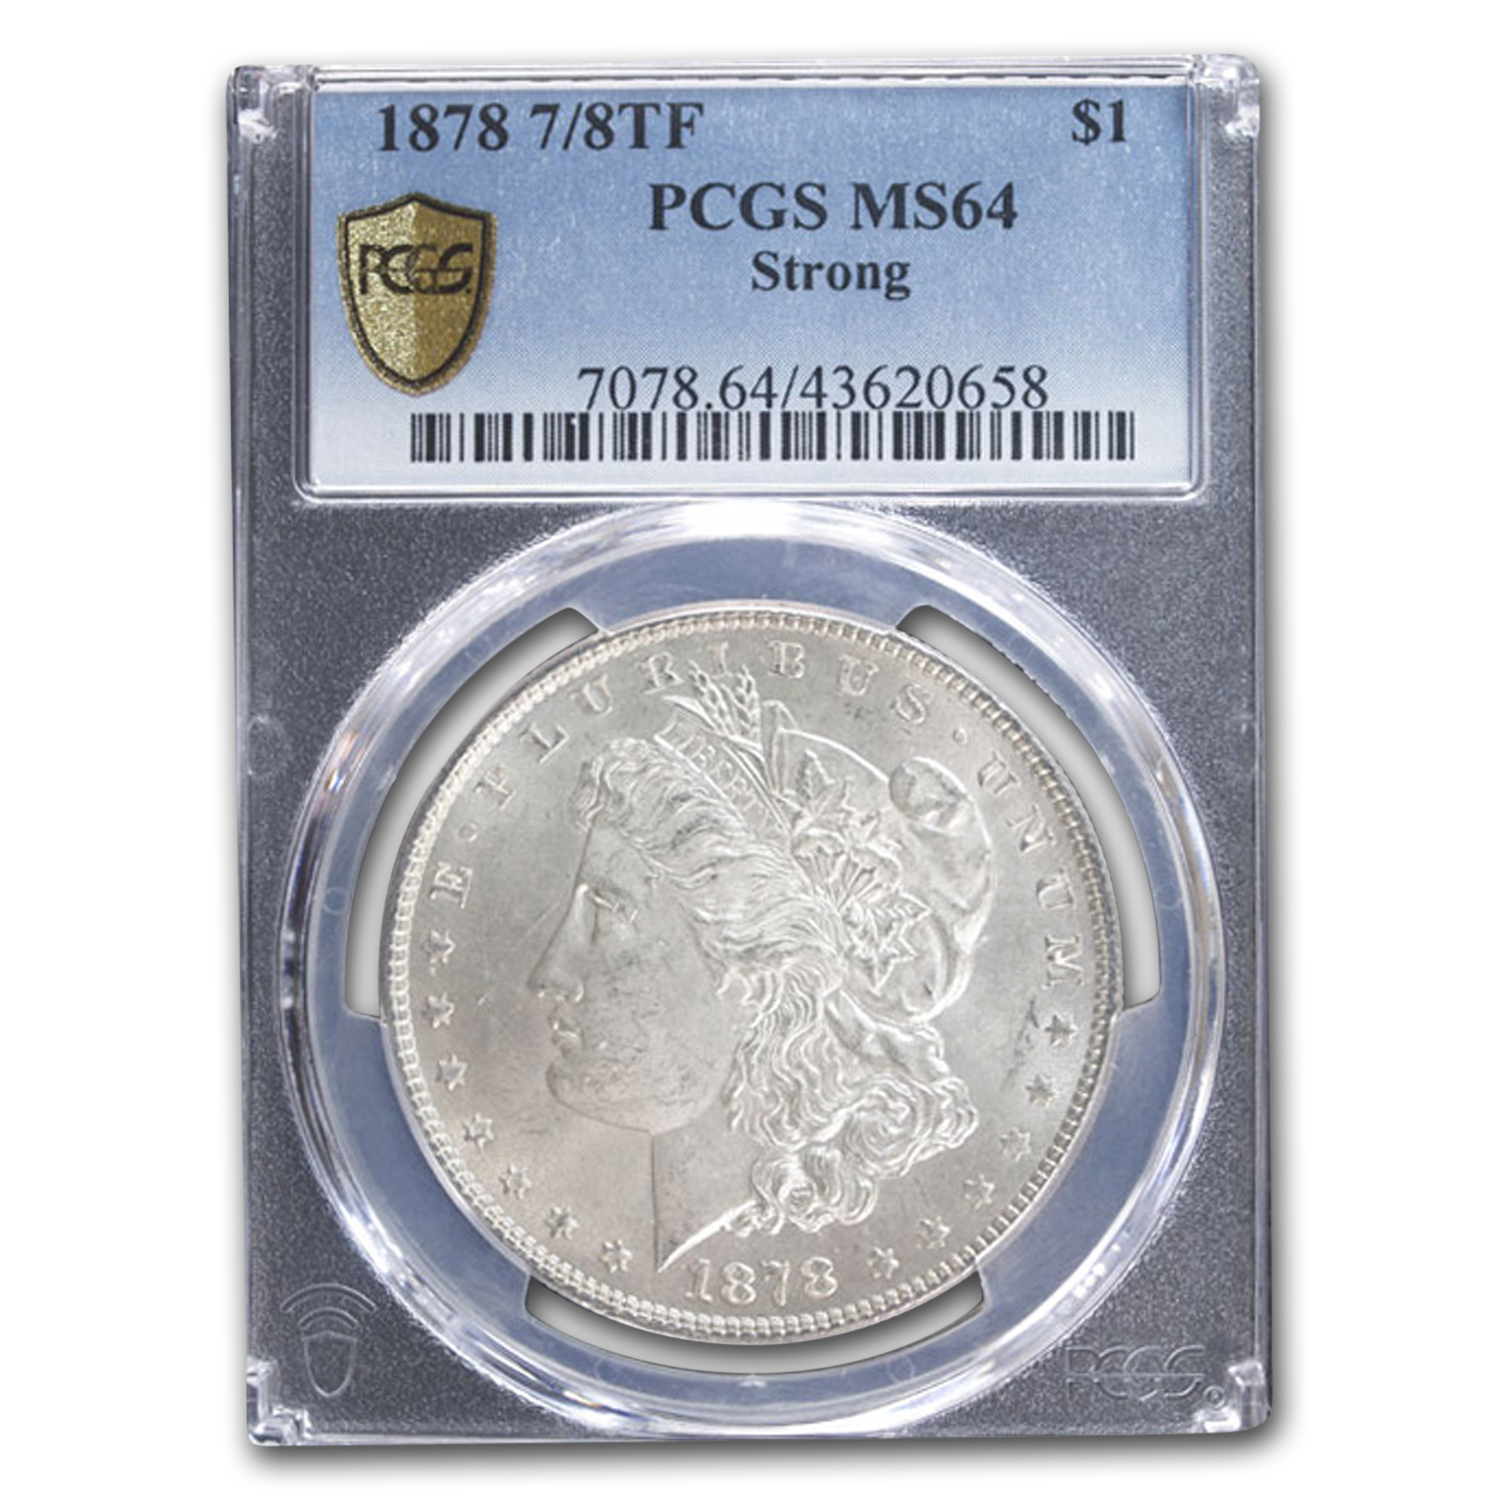 1878 Morgan Dollar 7/8 TF Strong MS-64 PCGS